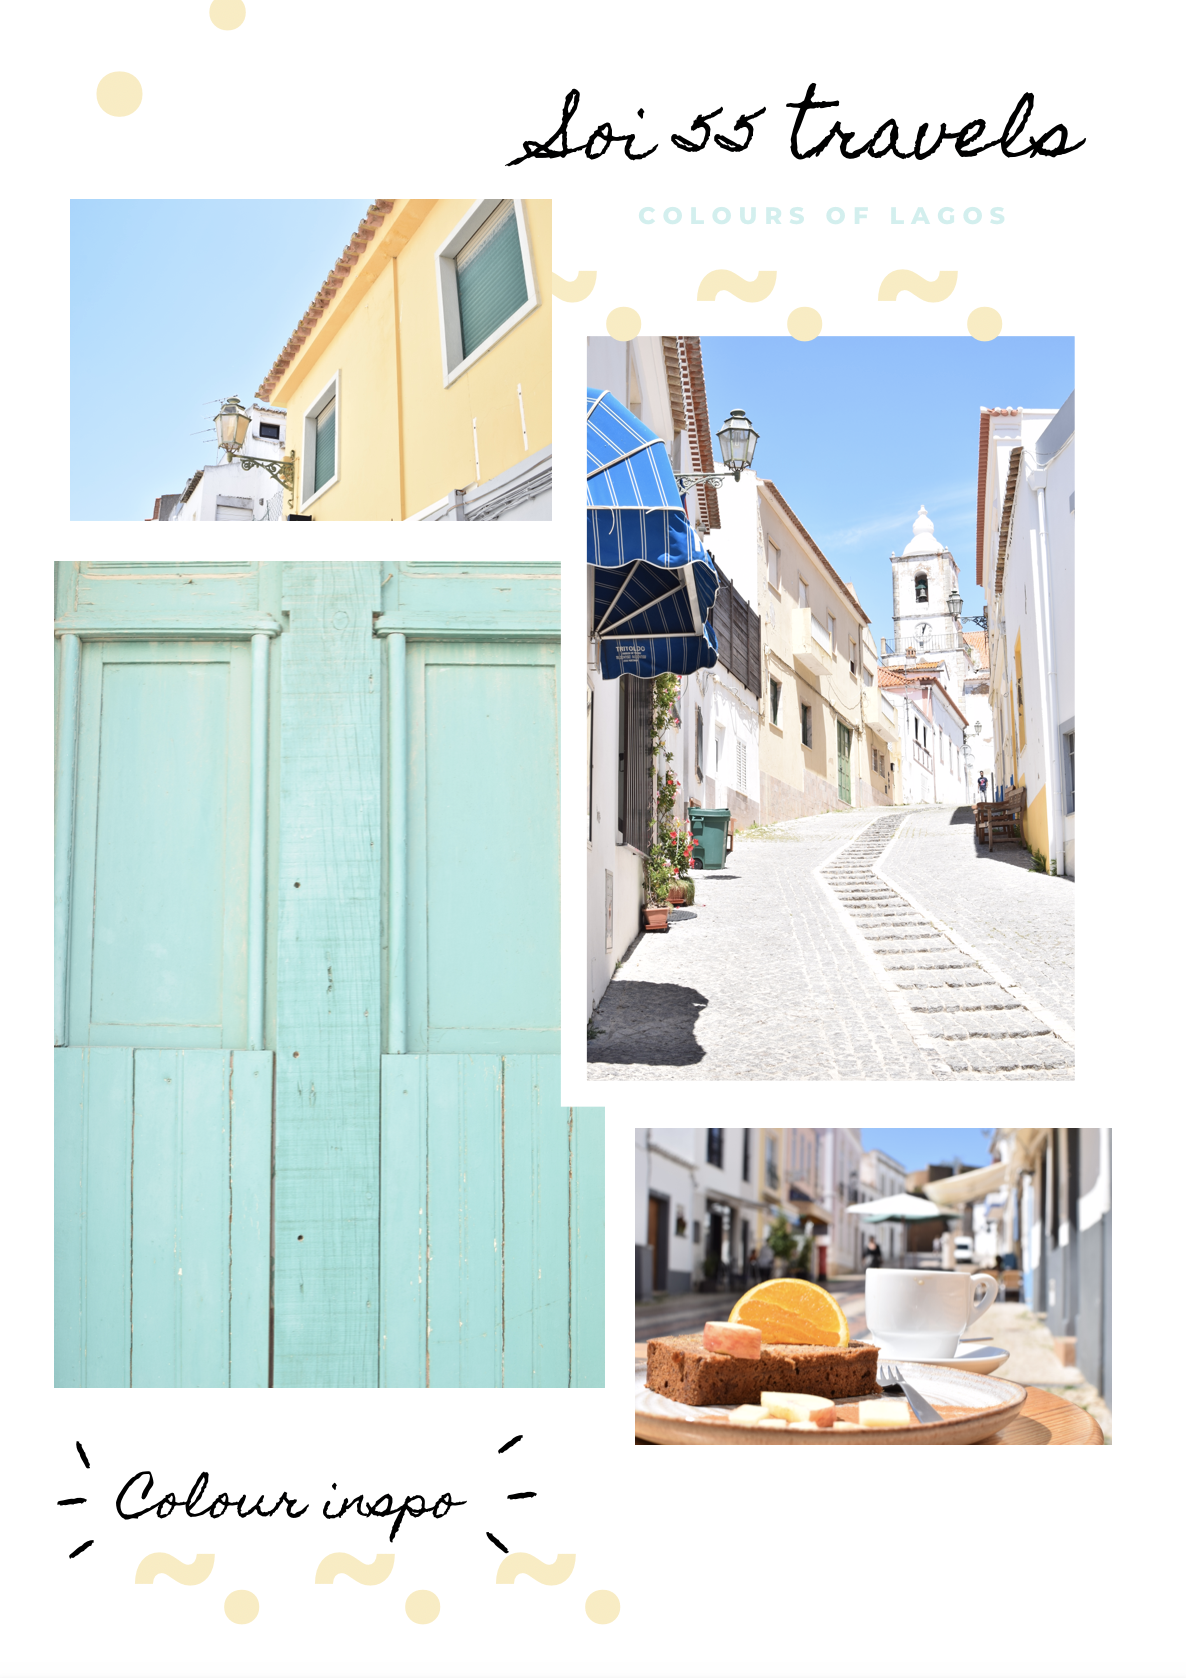 Finding colour inspiration in Lagos, Portugal